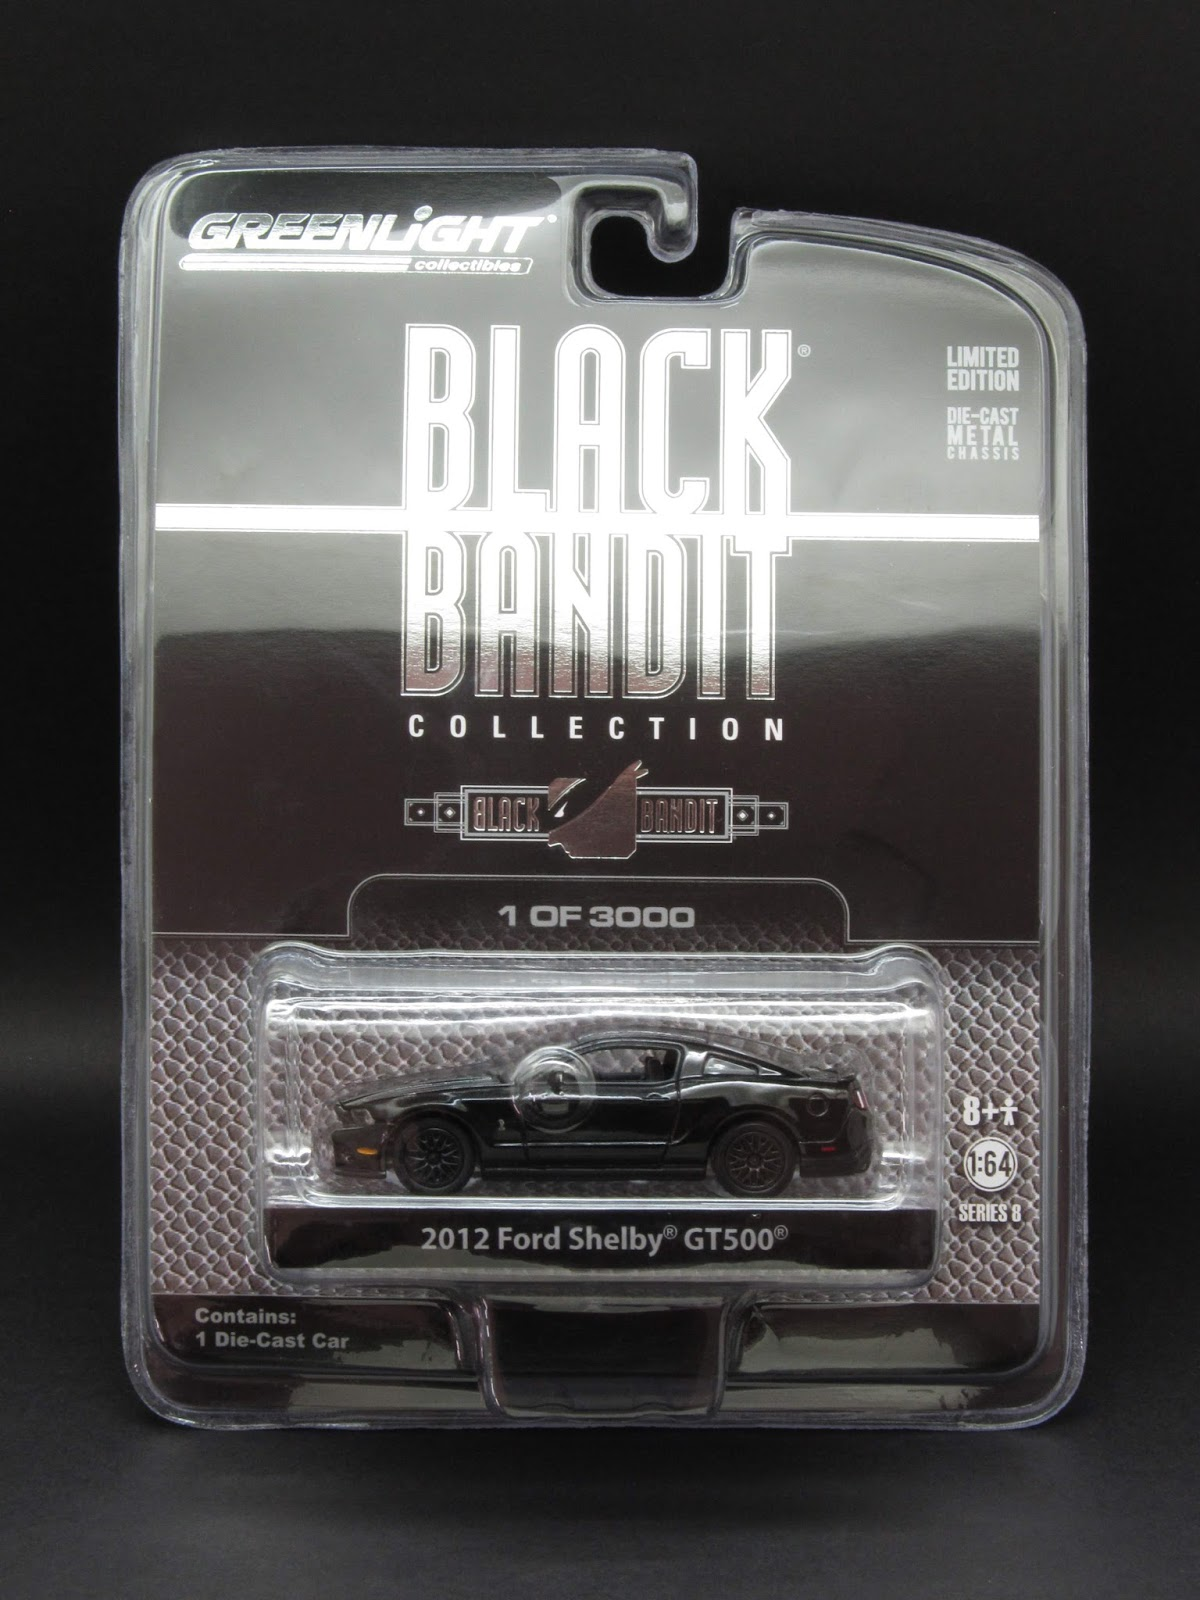 South County Chrysler >> Diecast Hobbist: Greenlight Black Bandit - Series 8